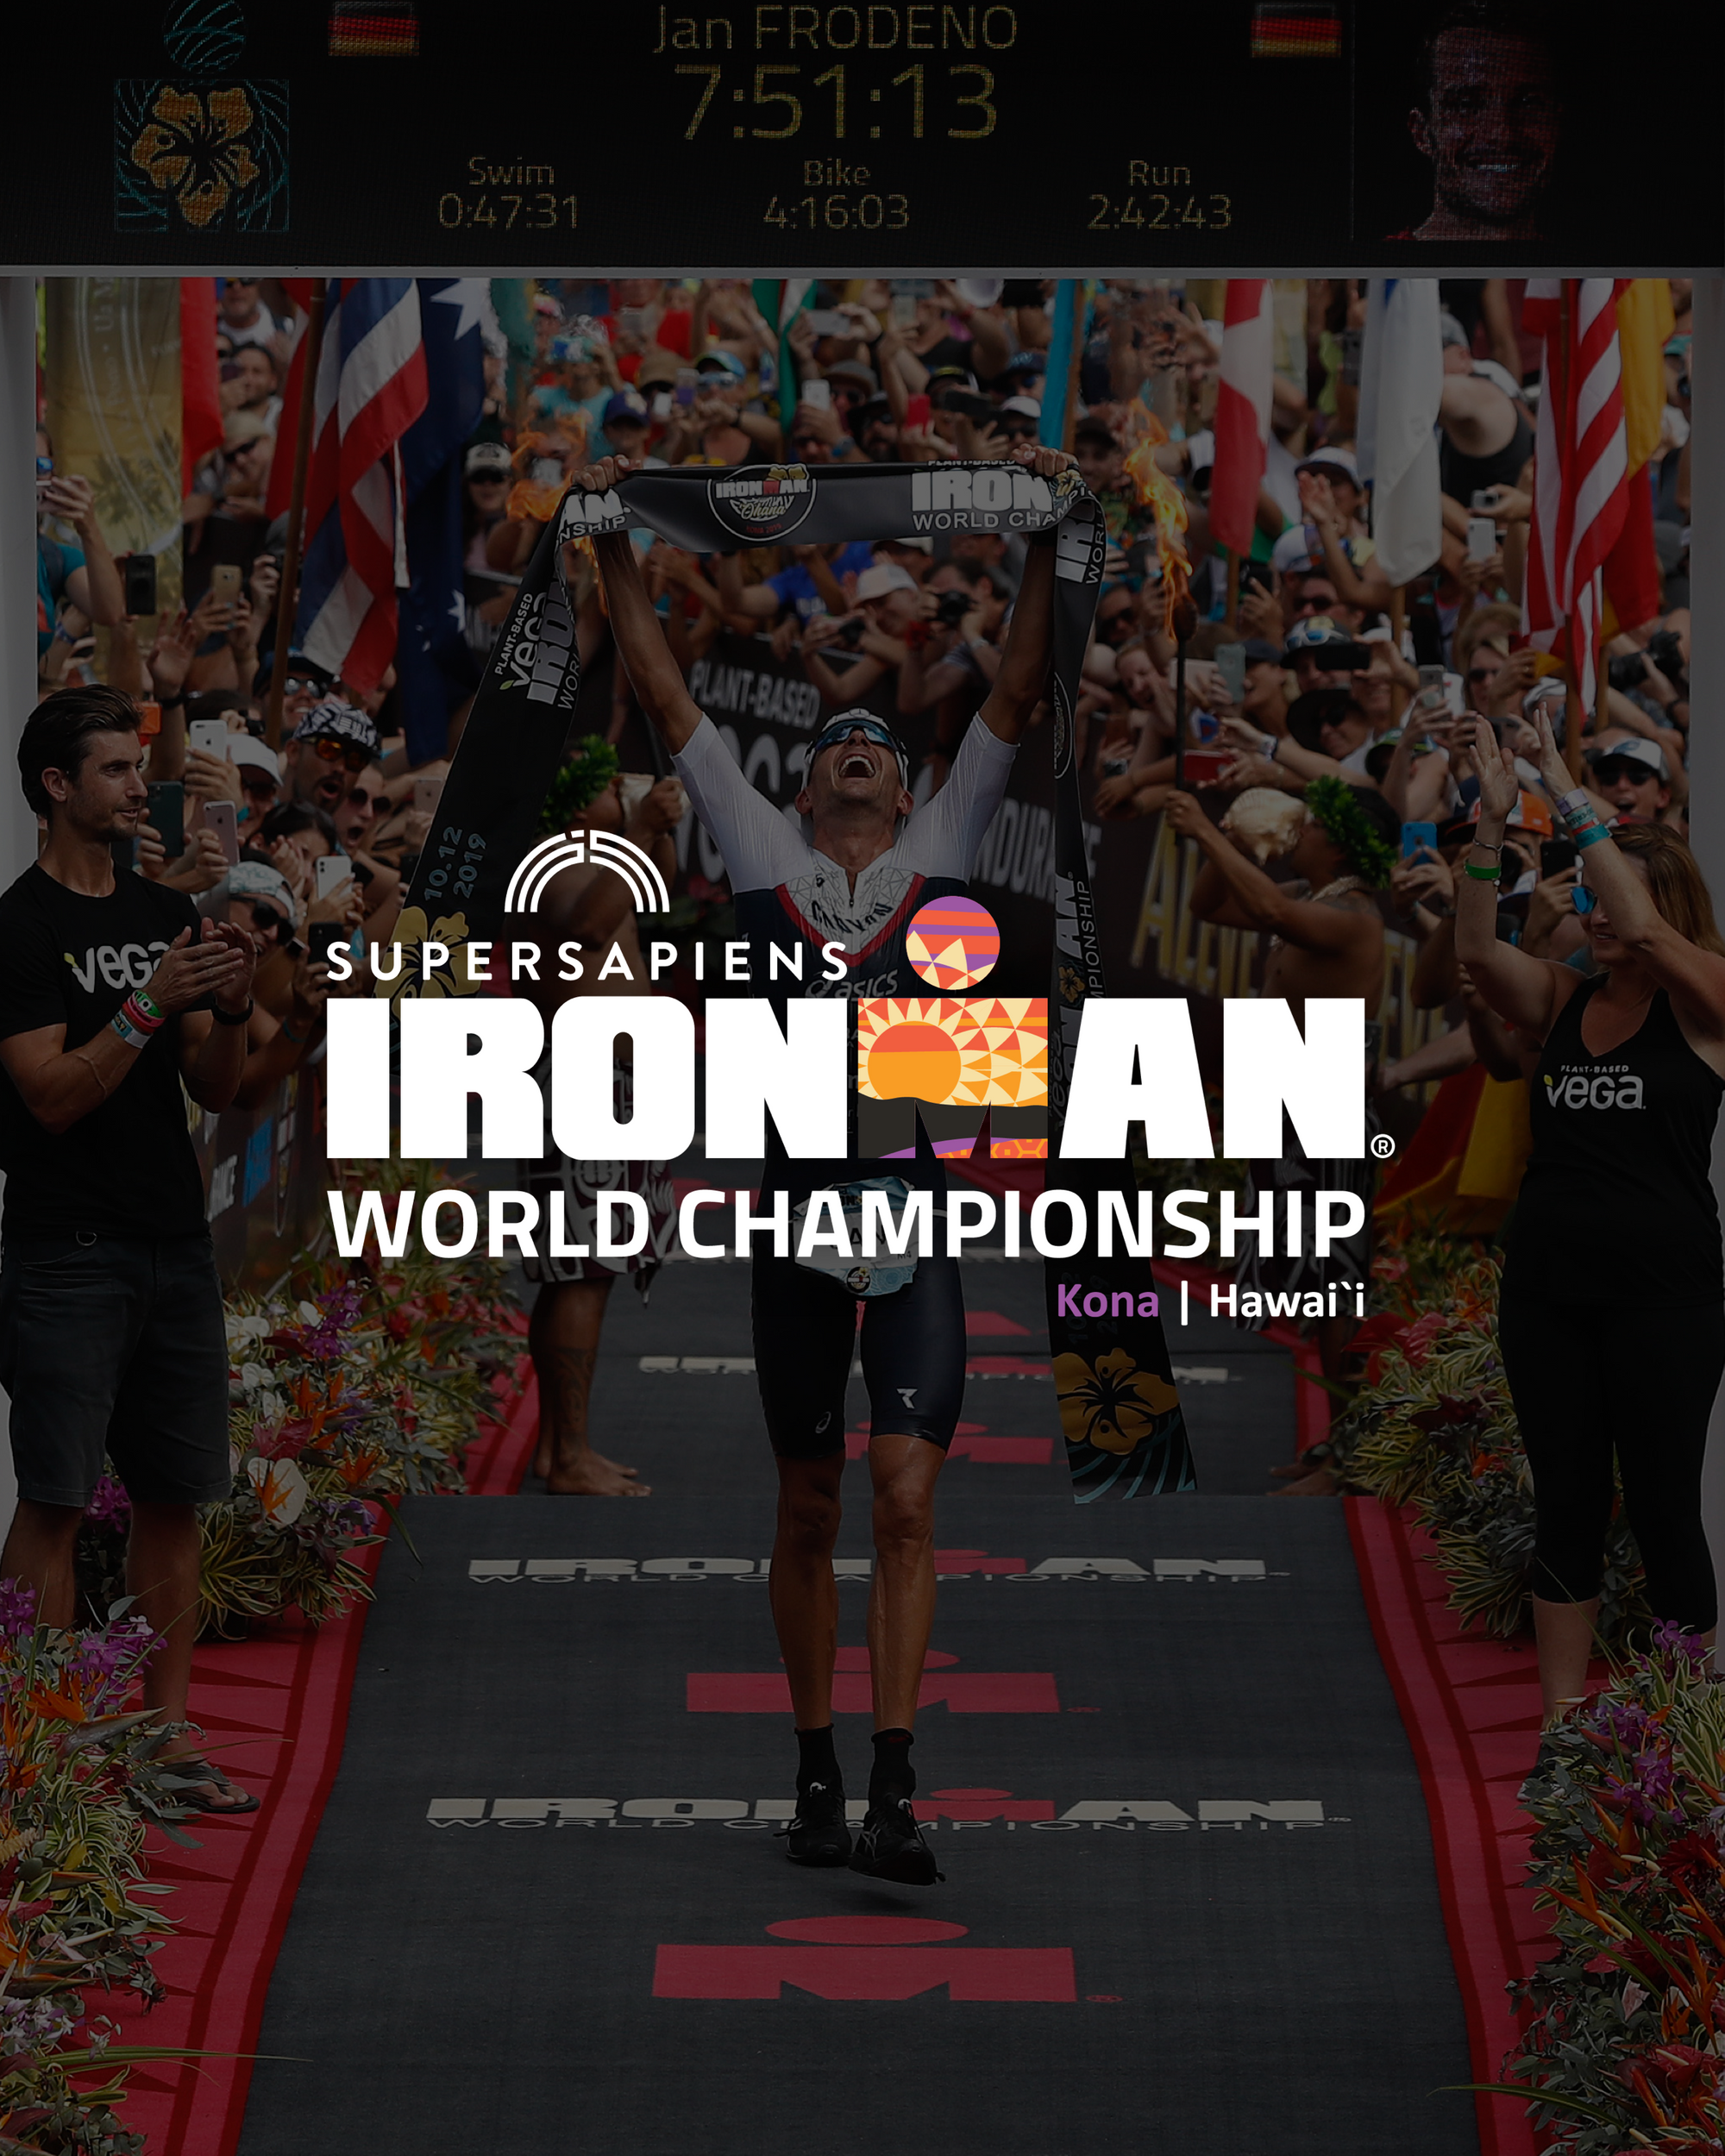 Supersapiens to be Title Sponsor for 2021 IRONMAN World Championship Kona